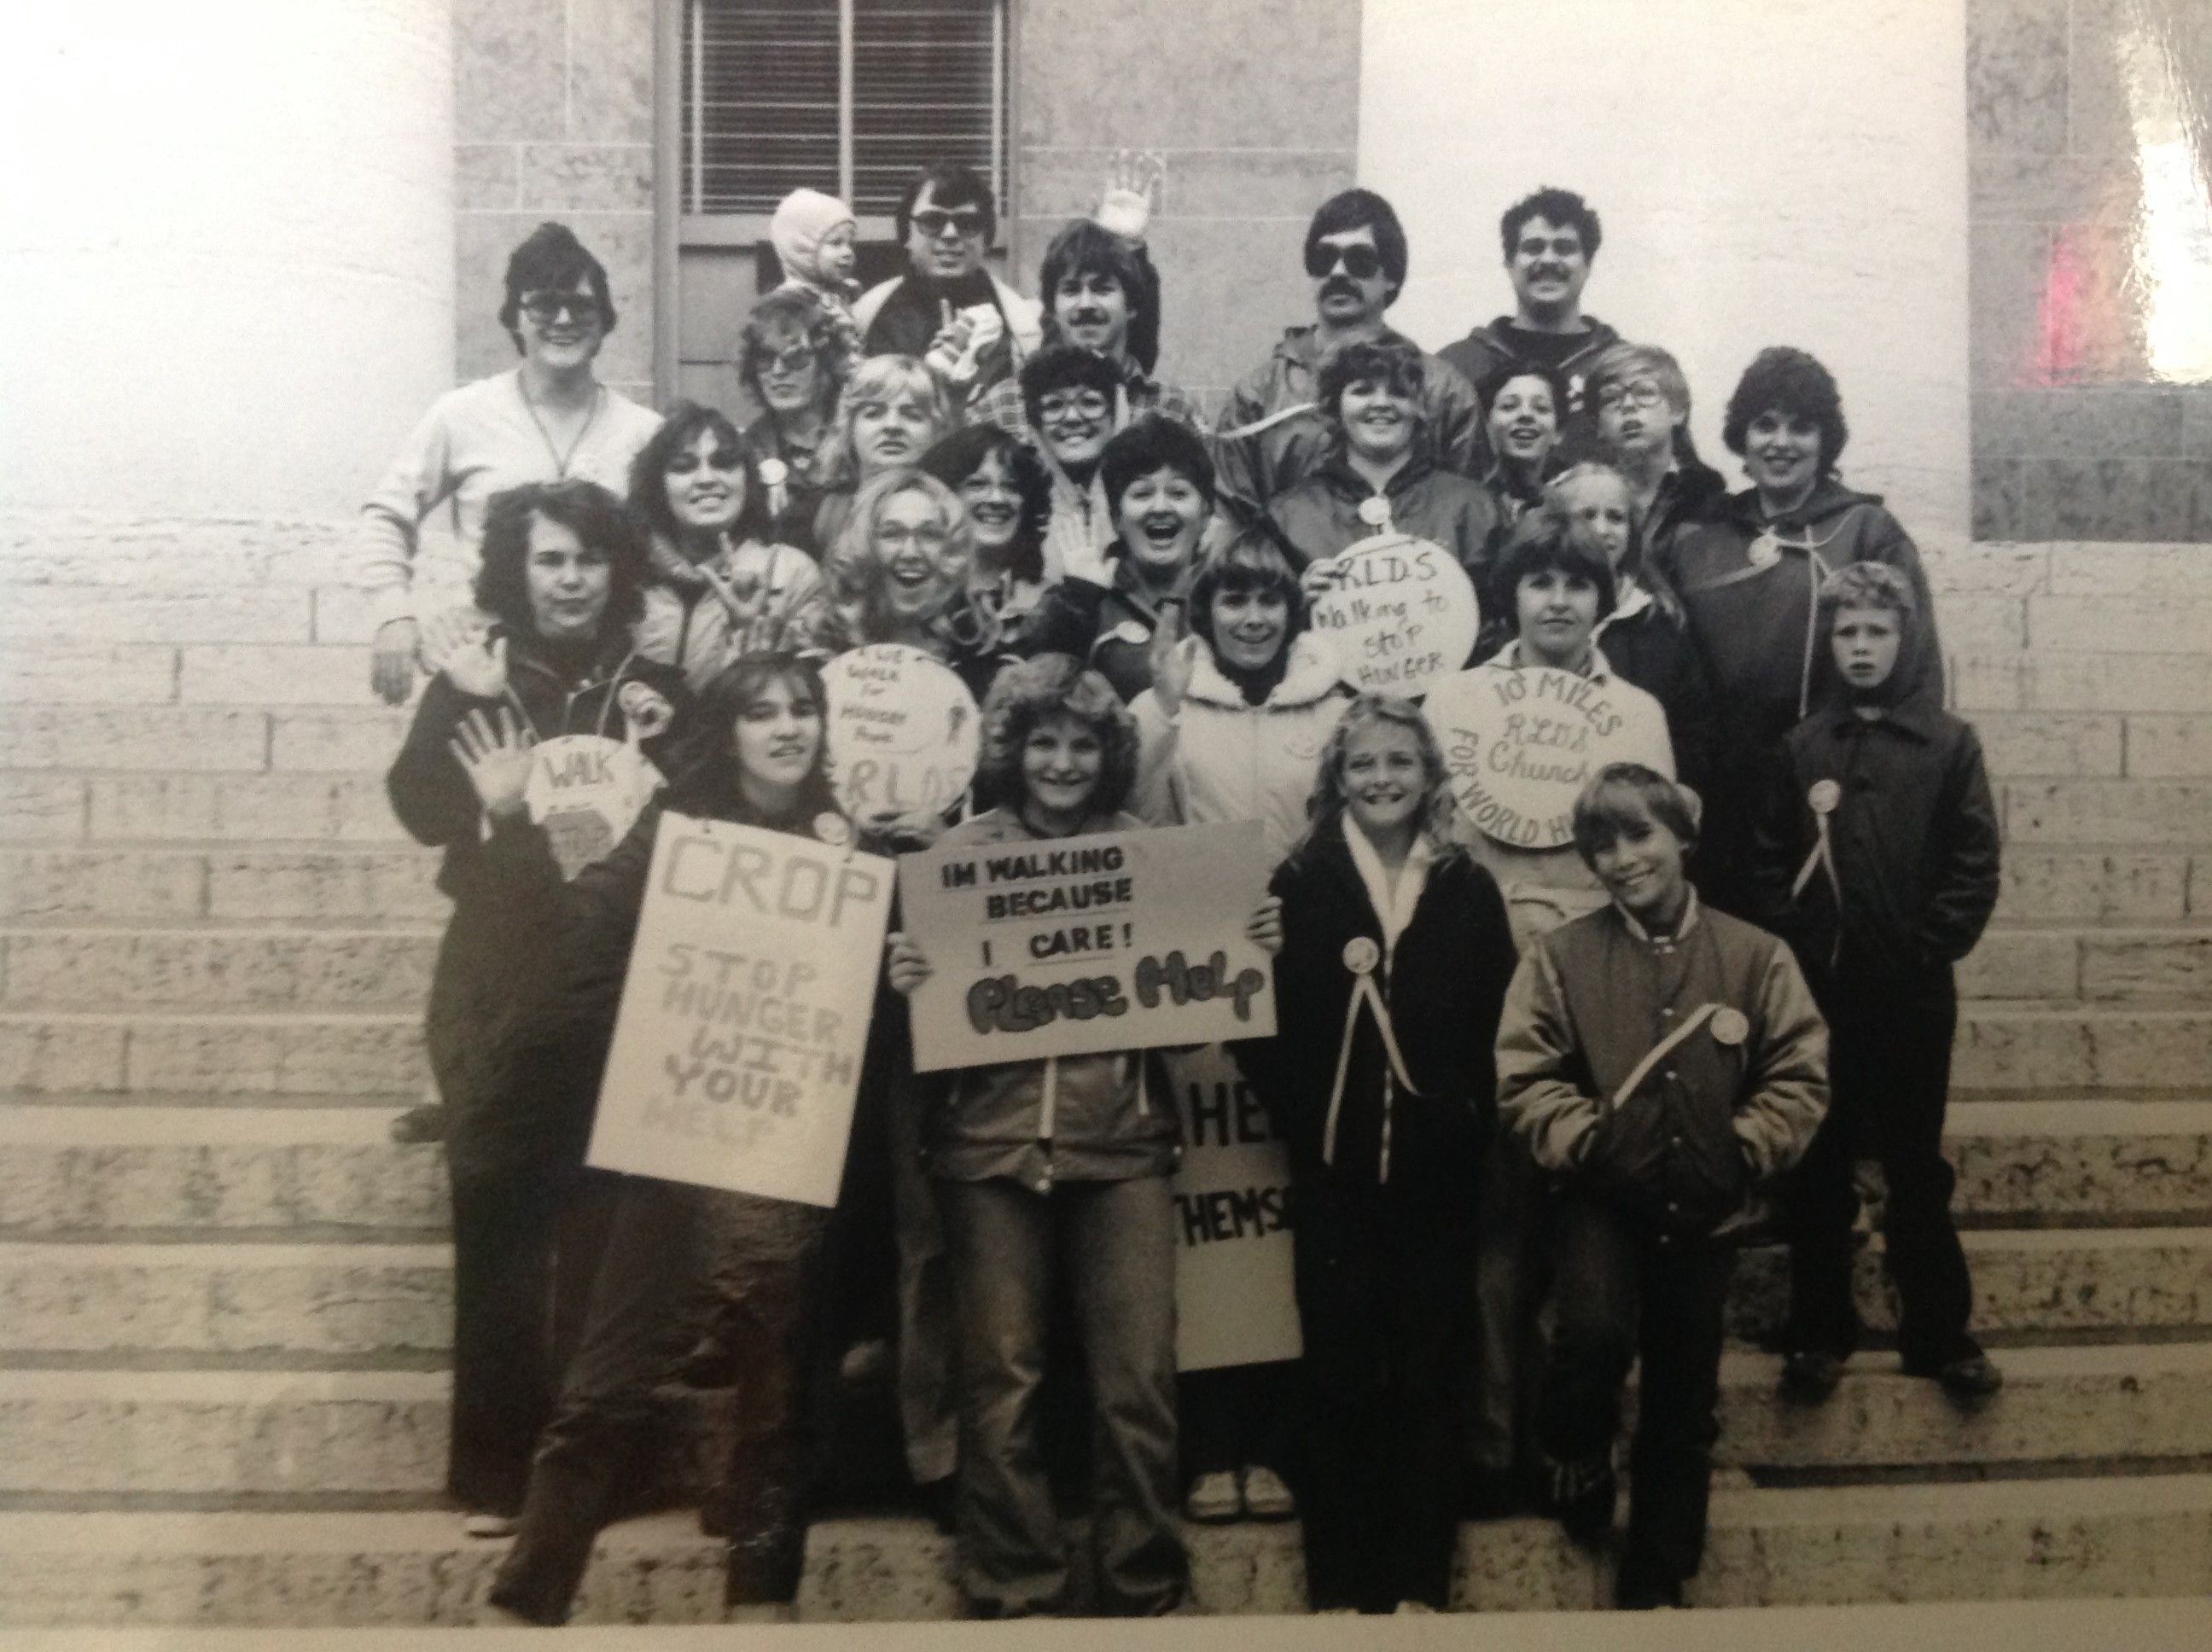 Ending Hunger One Step at a Time.  Outreach marches on! Longtime supporter Vivian Nash and her husband Jerry are making strides to combat chronic hunger with friends and neighbors in Oregon by participating in a CROP Walk.  Grove City #CropWalk, 1981